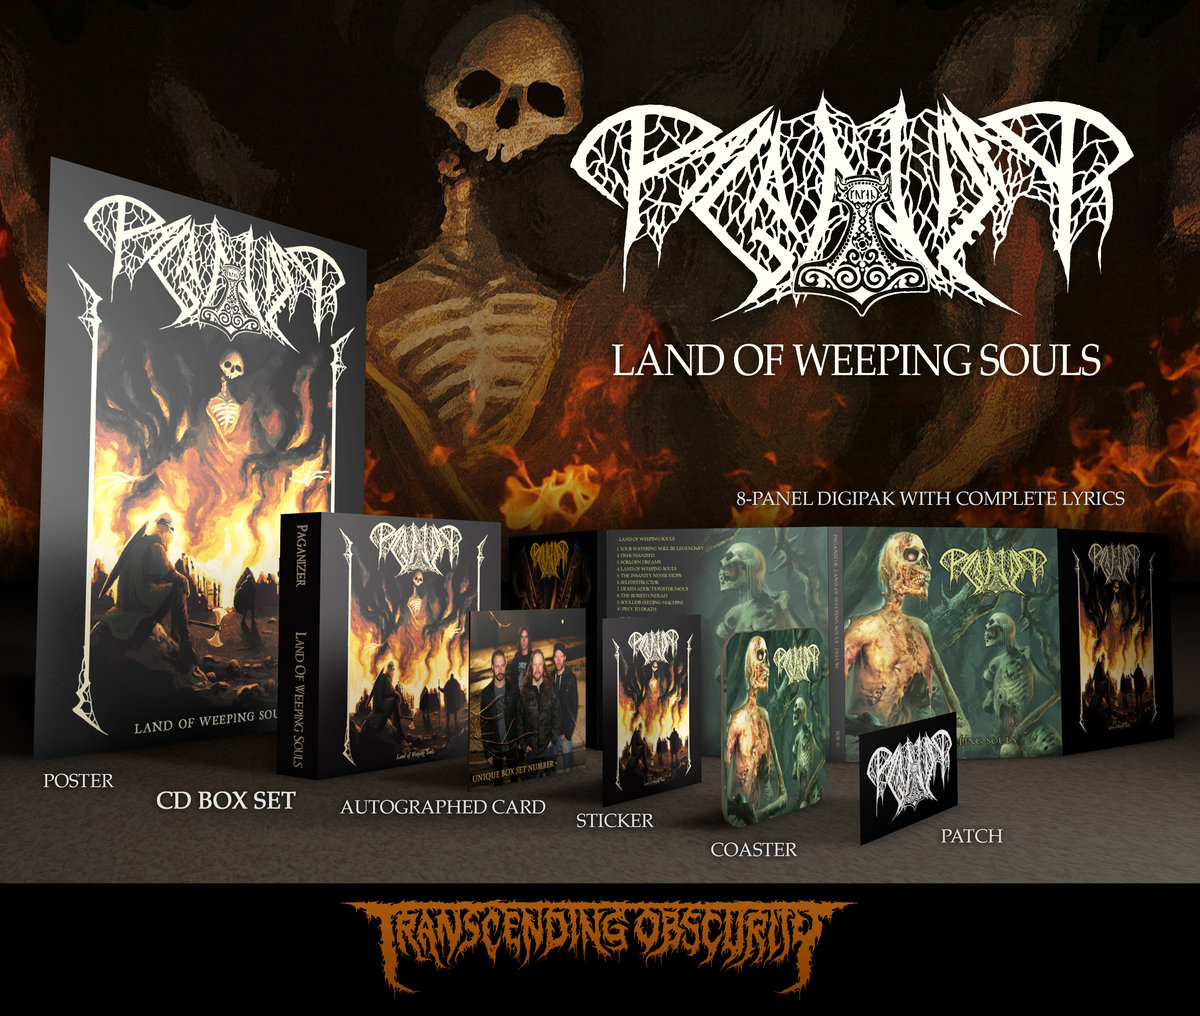 PAGANIZER (Sweden) - Land of Weeping Souls Deluxe CD Box Set (Autographed and Numbered)